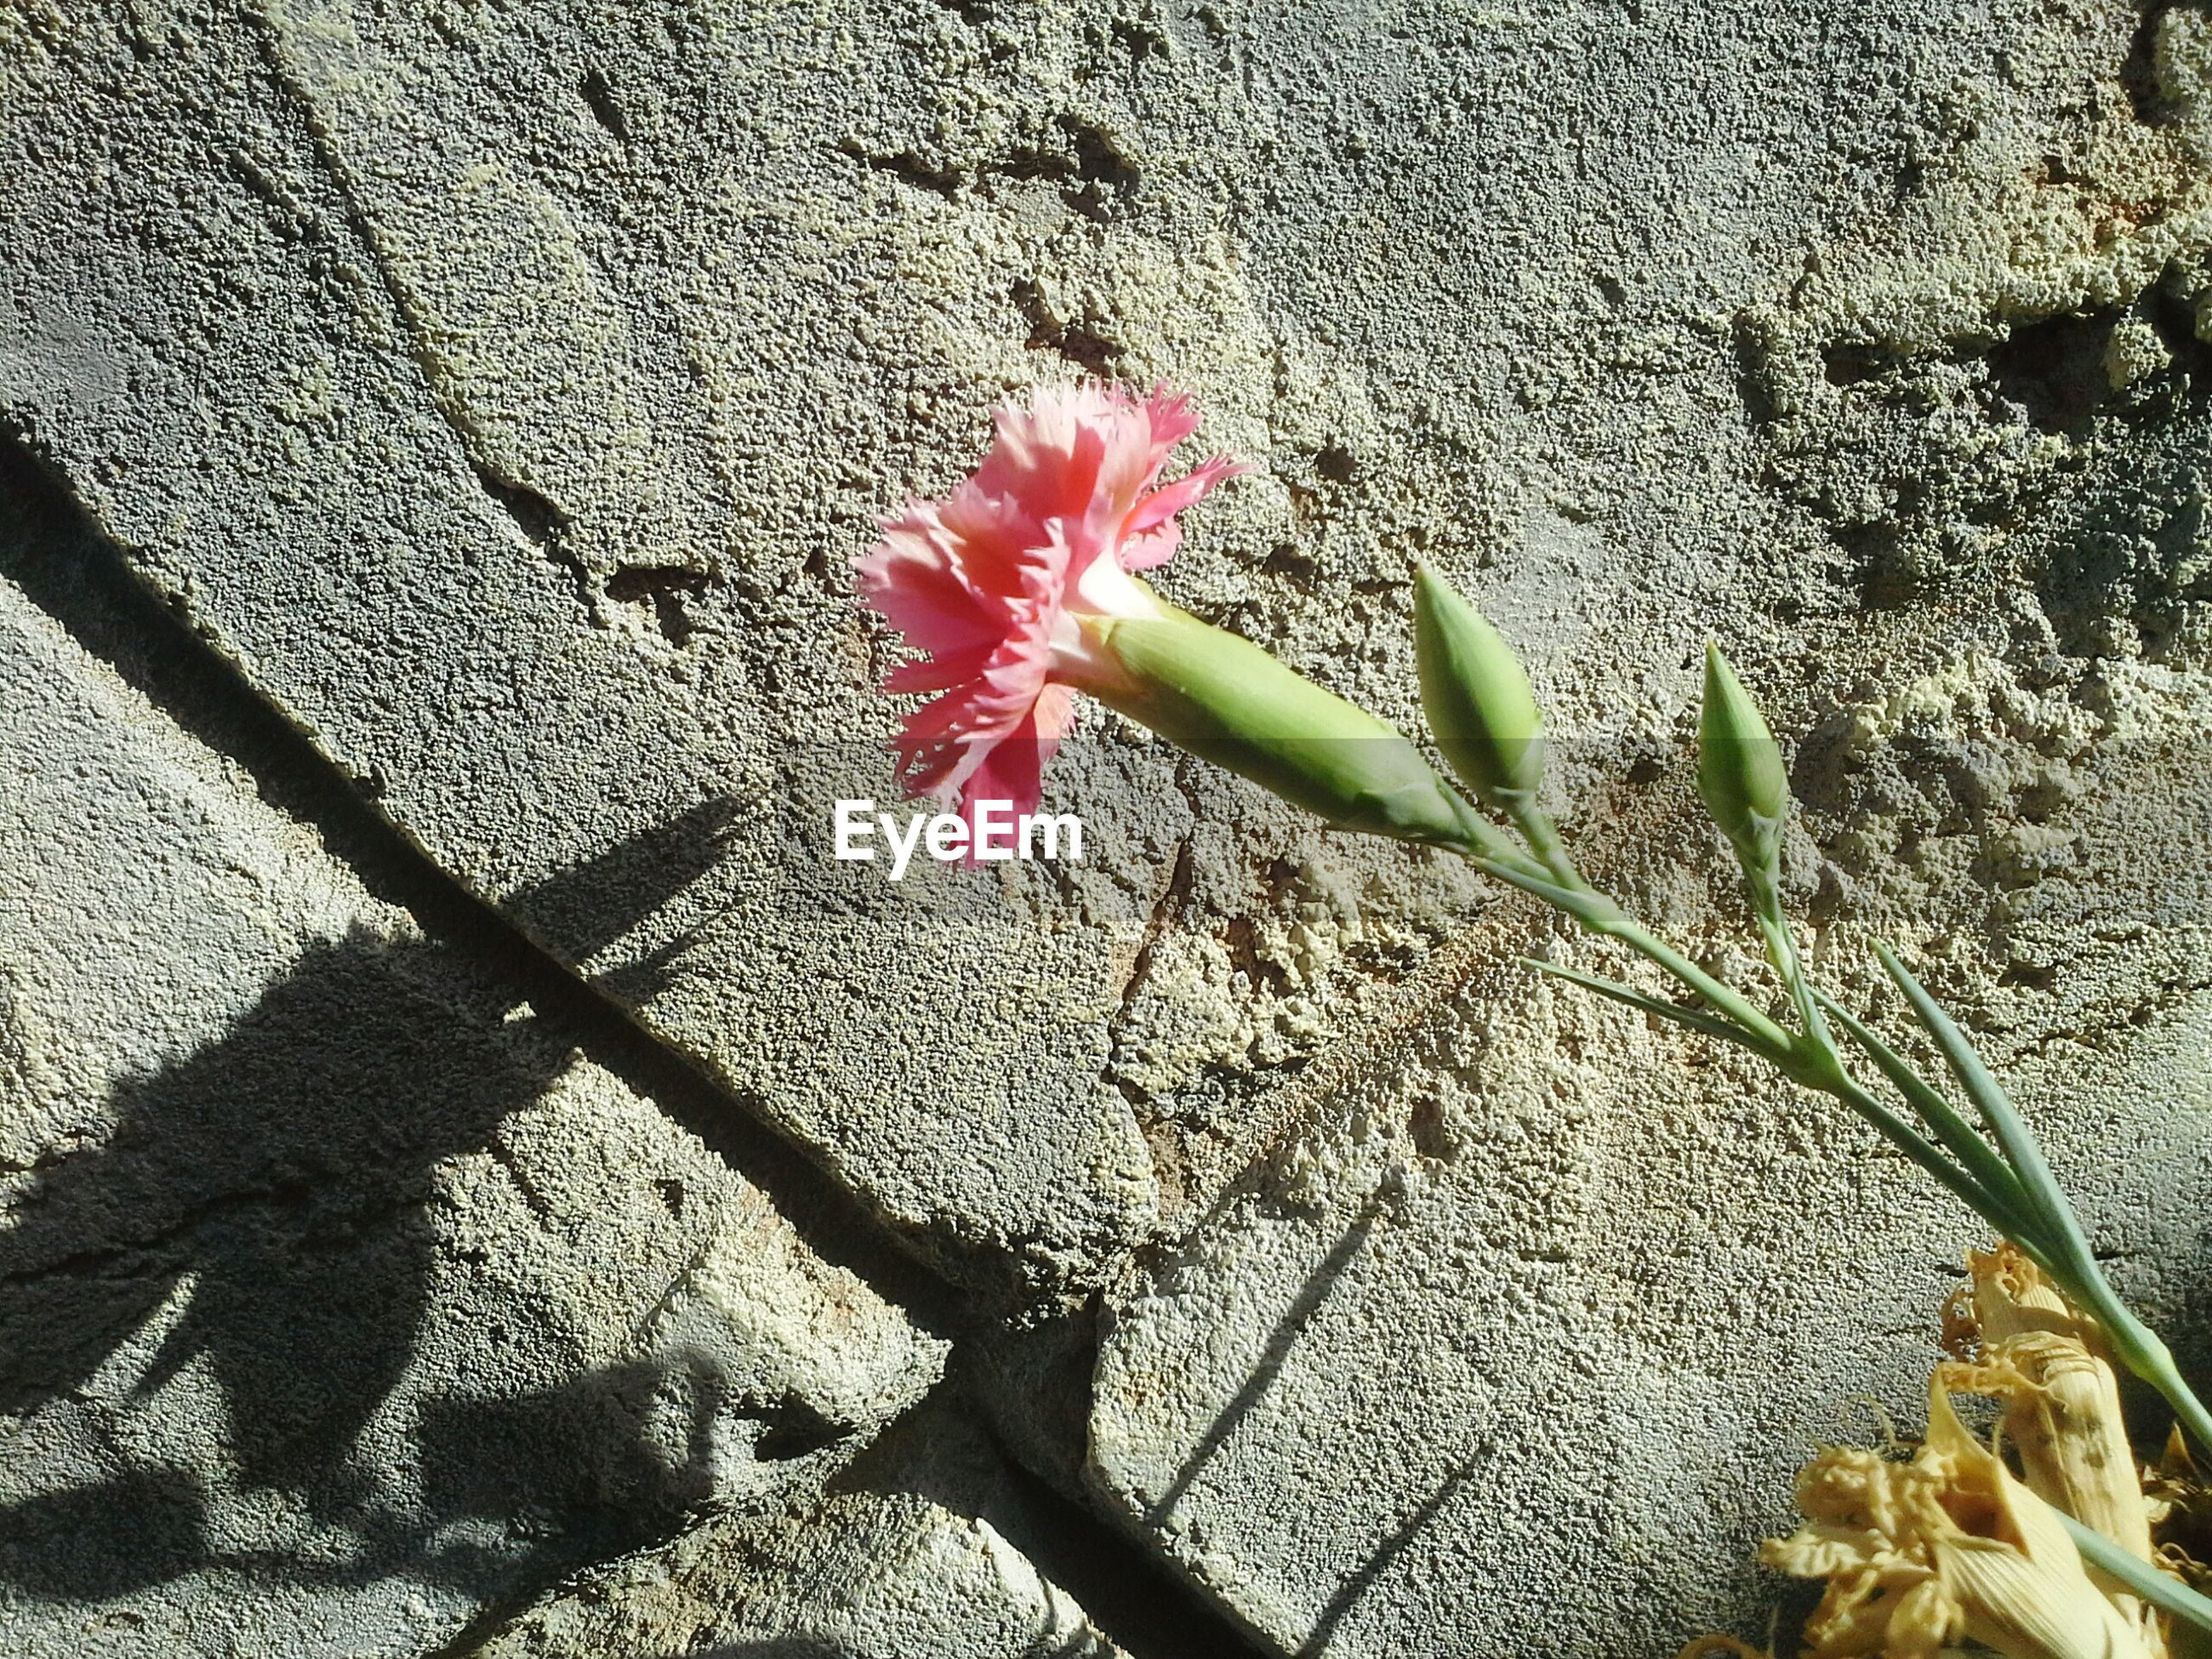 flower, petal, freshness, fragility, growth, flower head, plant, leaf, beauty in nature, nature, blooming, pink color, in bloom, sunlight, stem, day, close-up, outdoors, blossom, no people, botany, growing, pollen, ground, tranquility, softness